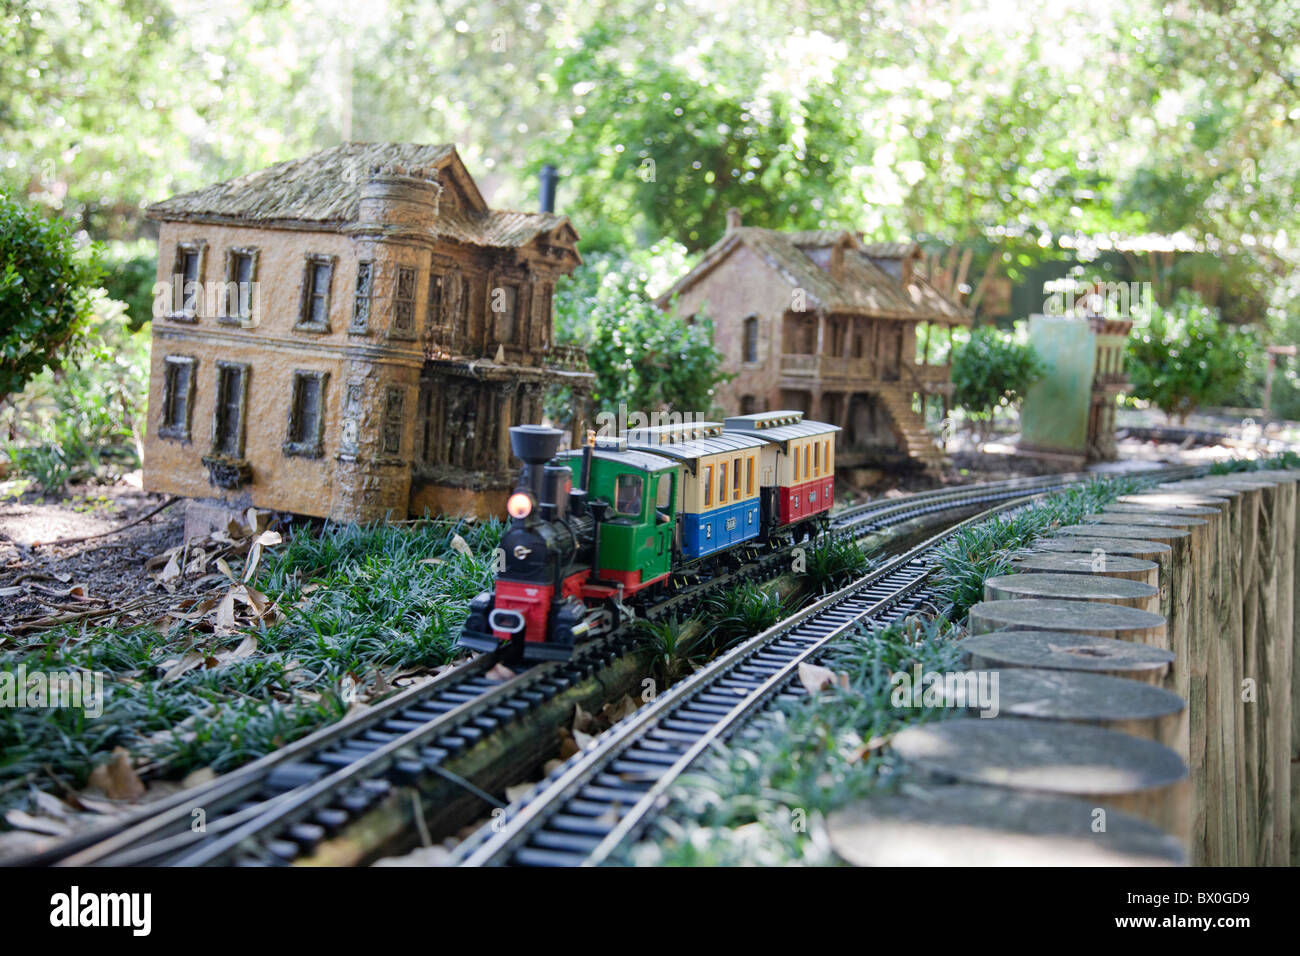 The New Orleans Botanical Garden Displays Miniature Trains U0026 Streetcars  That Travel Through A Replica Of The French Quarter